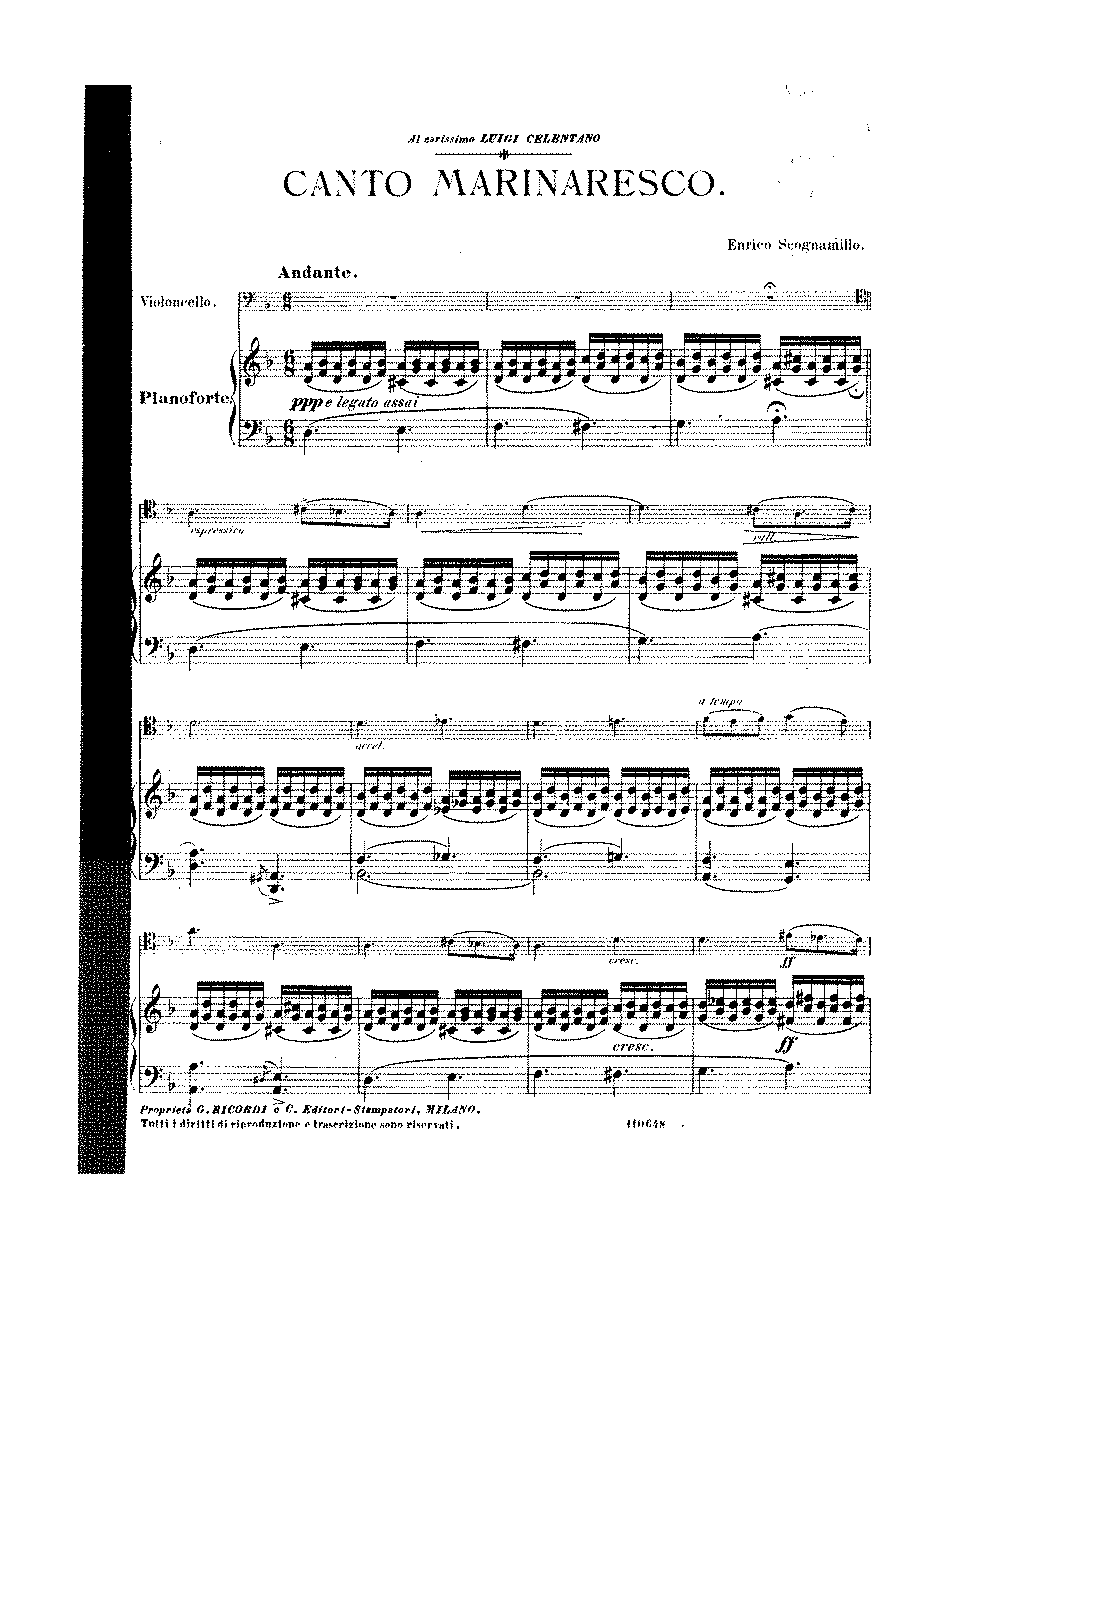 PMLP138187-Scognamillo - Canto Marinaresco for Cello and Piano score.pdf